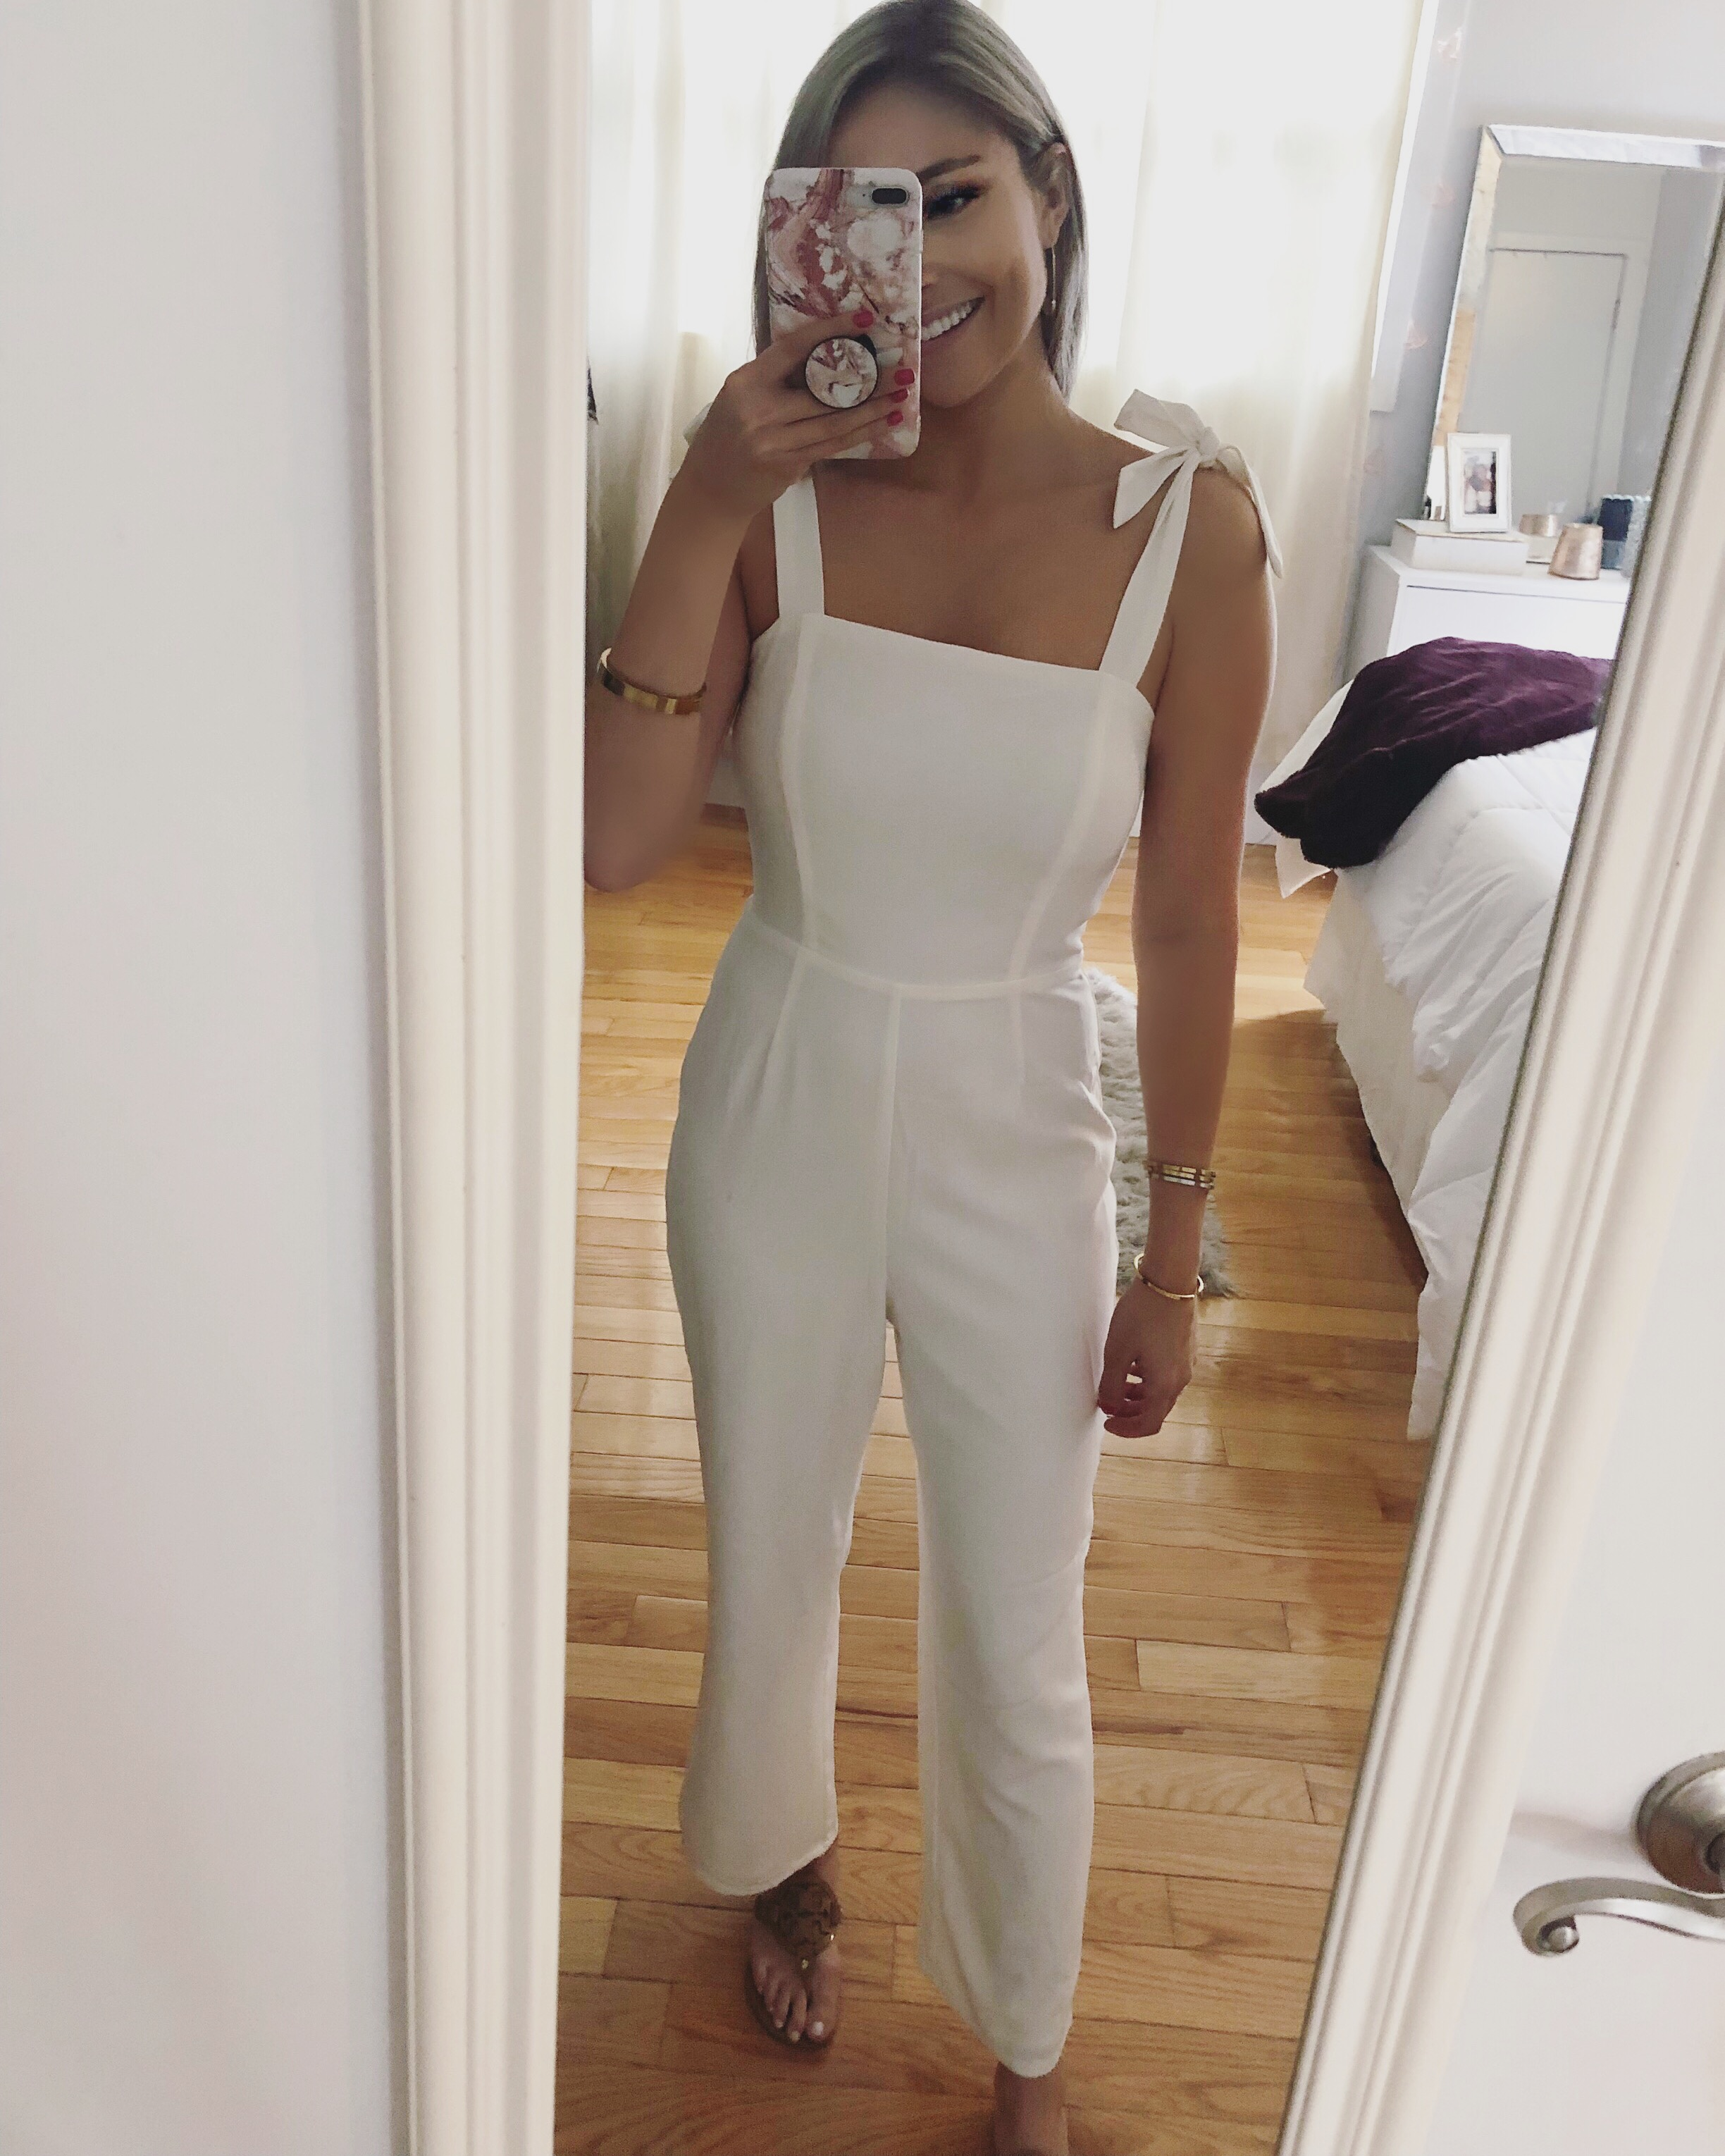 Recreate the Look: - Jumpsuit: DFTI Boutique Earrings: AnthropologieSandals: Tory Burch